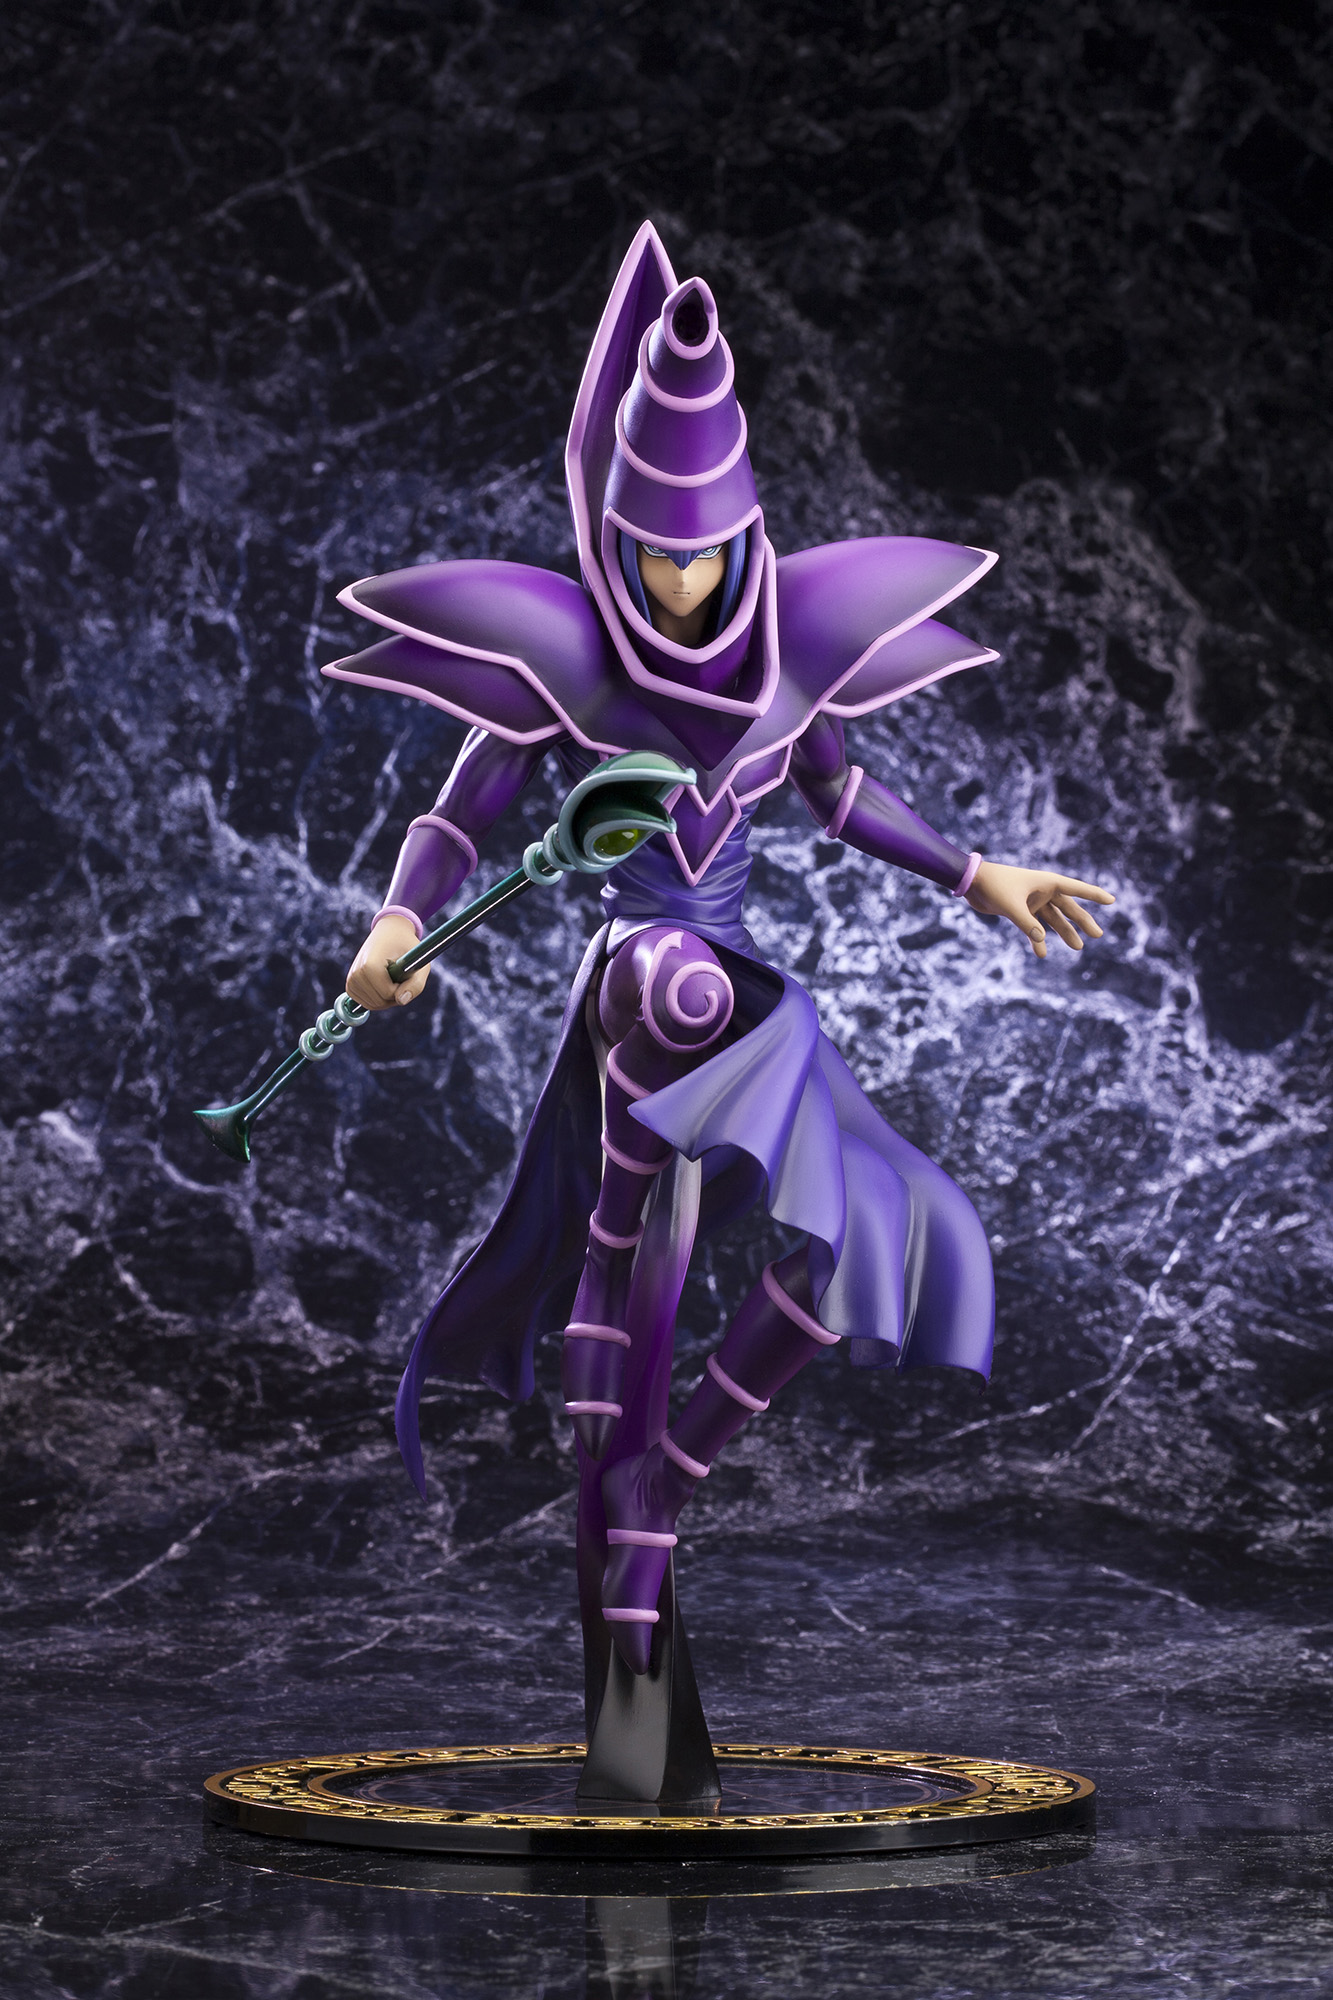 The Magician Tarot: It's Time To Duel With Kotobukiya's Yu-Gi-Oh! Statues